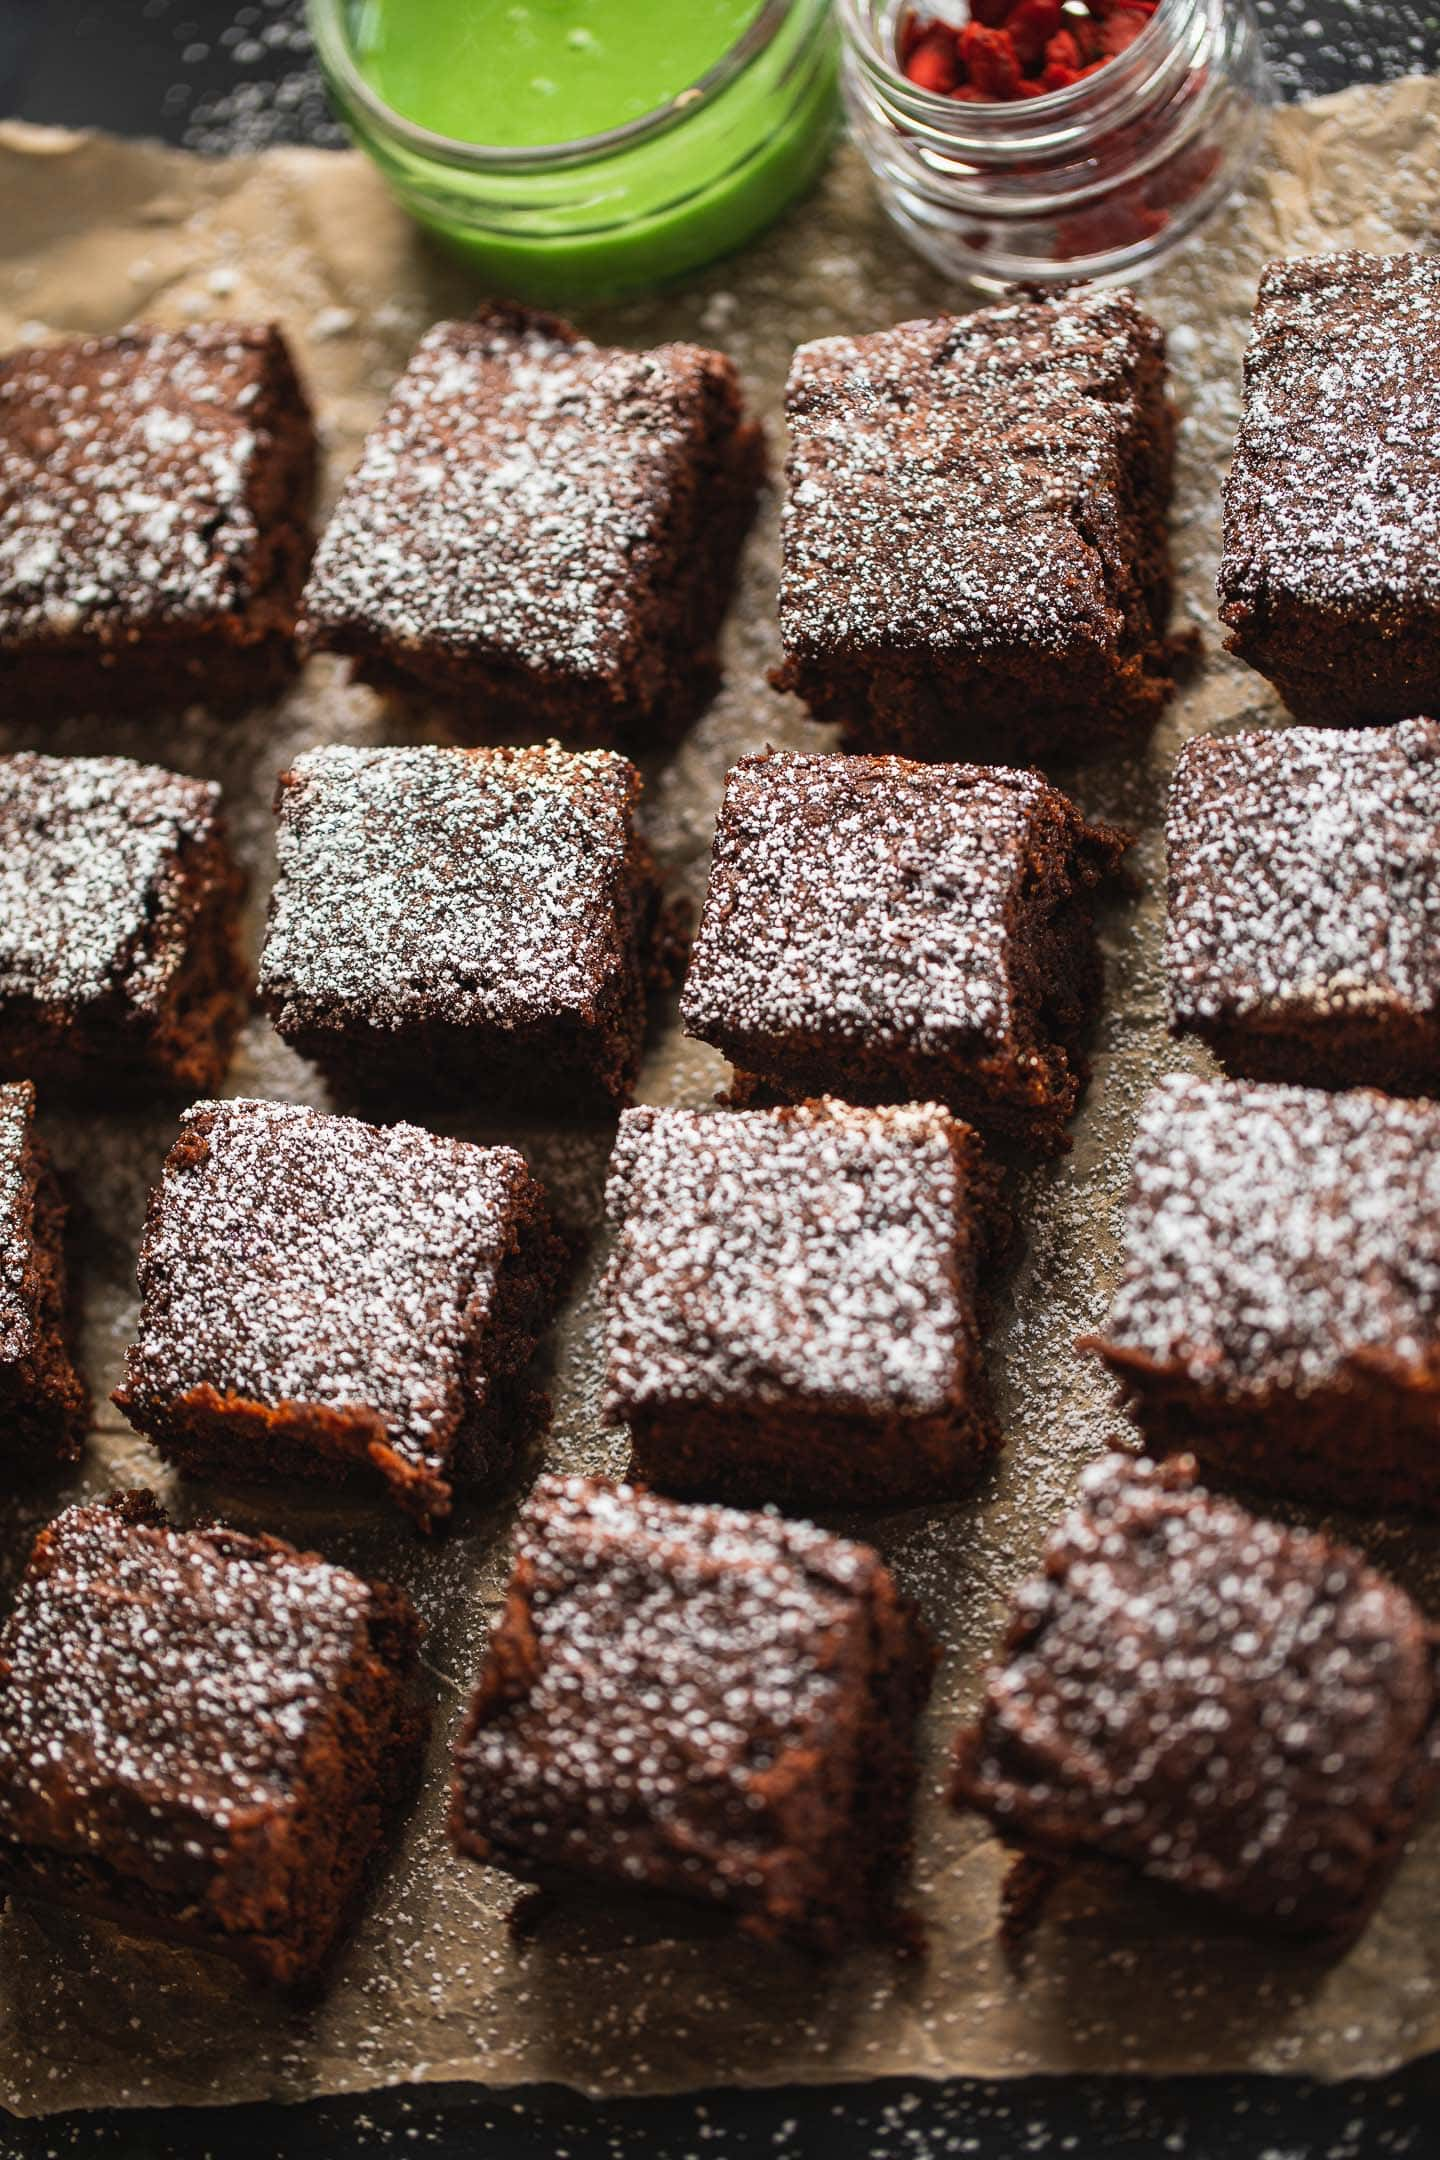 Dairy-free peppermint brownies on a baking tray